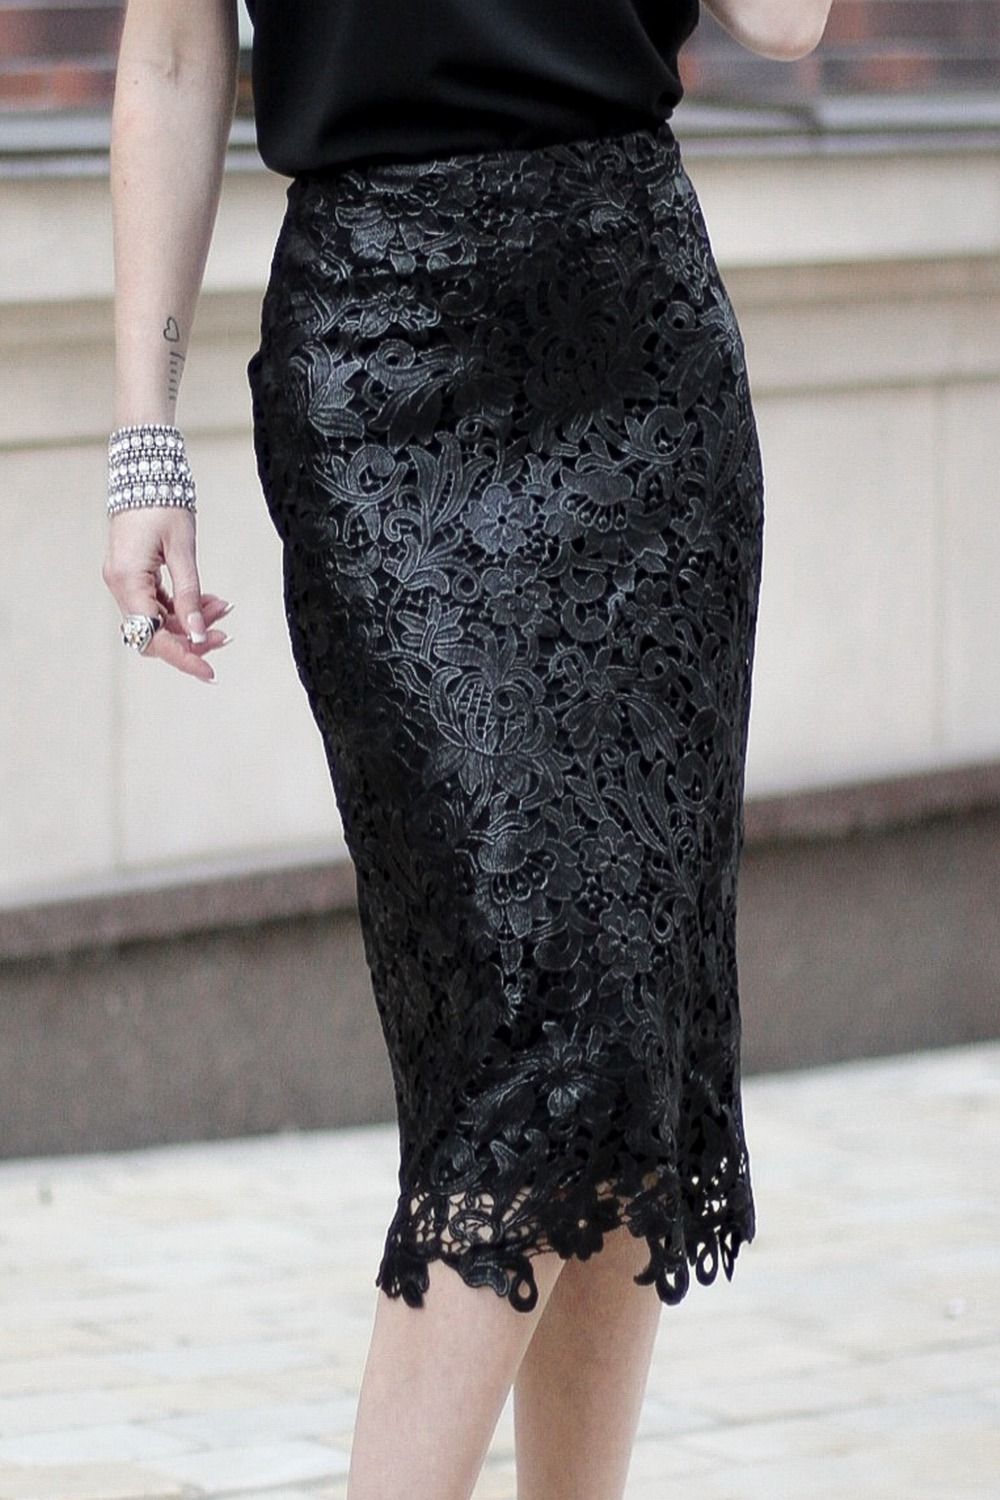 Buy Black Cotton Midi skirt, Everning Lace skirt, Zipper on a back skirt, Party Straight skirt